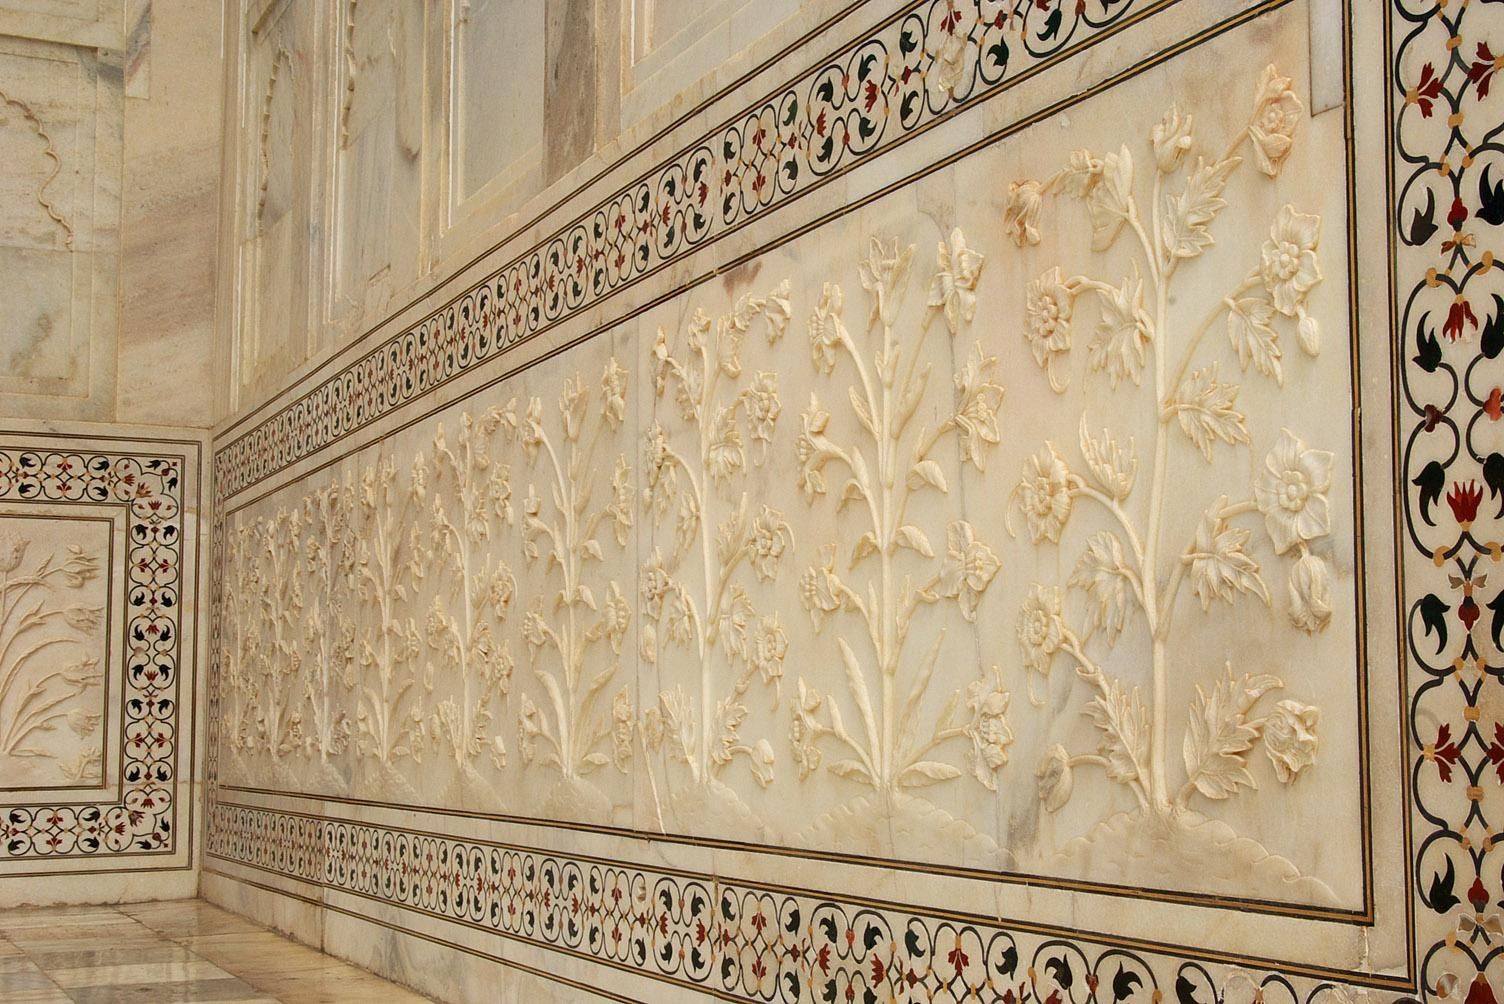 Love Landmark: Taj Mahal | Galahotels Blog Pertaining To Taj Mahal Wall Art (View 9 of 20)